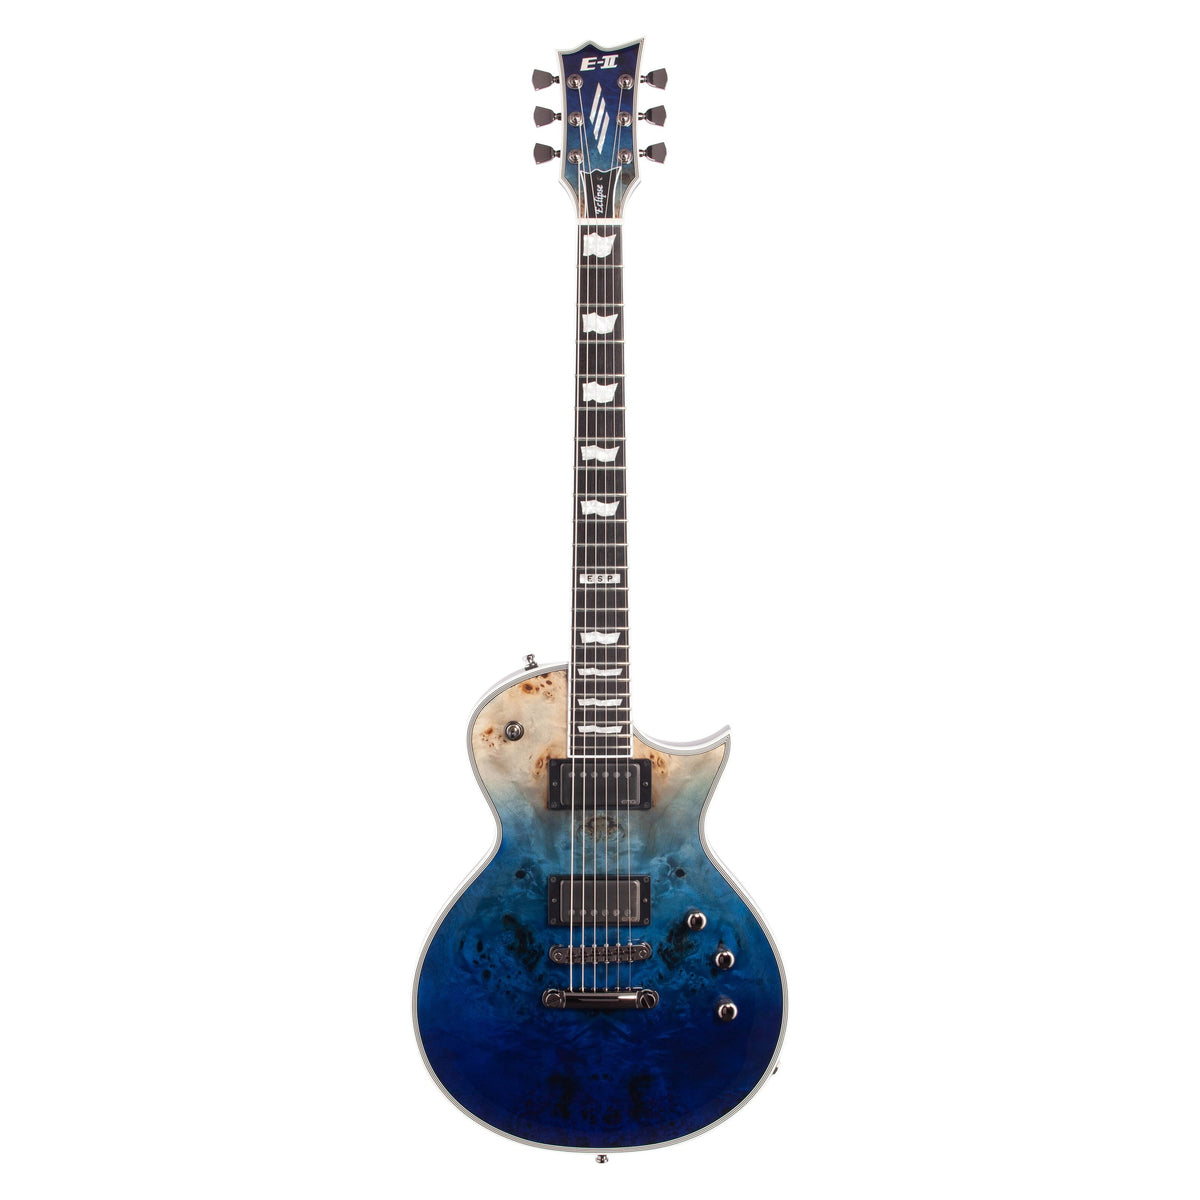 ESP E-II Eclipse BM Electric Guitar (with Case), Blue Natural Fade